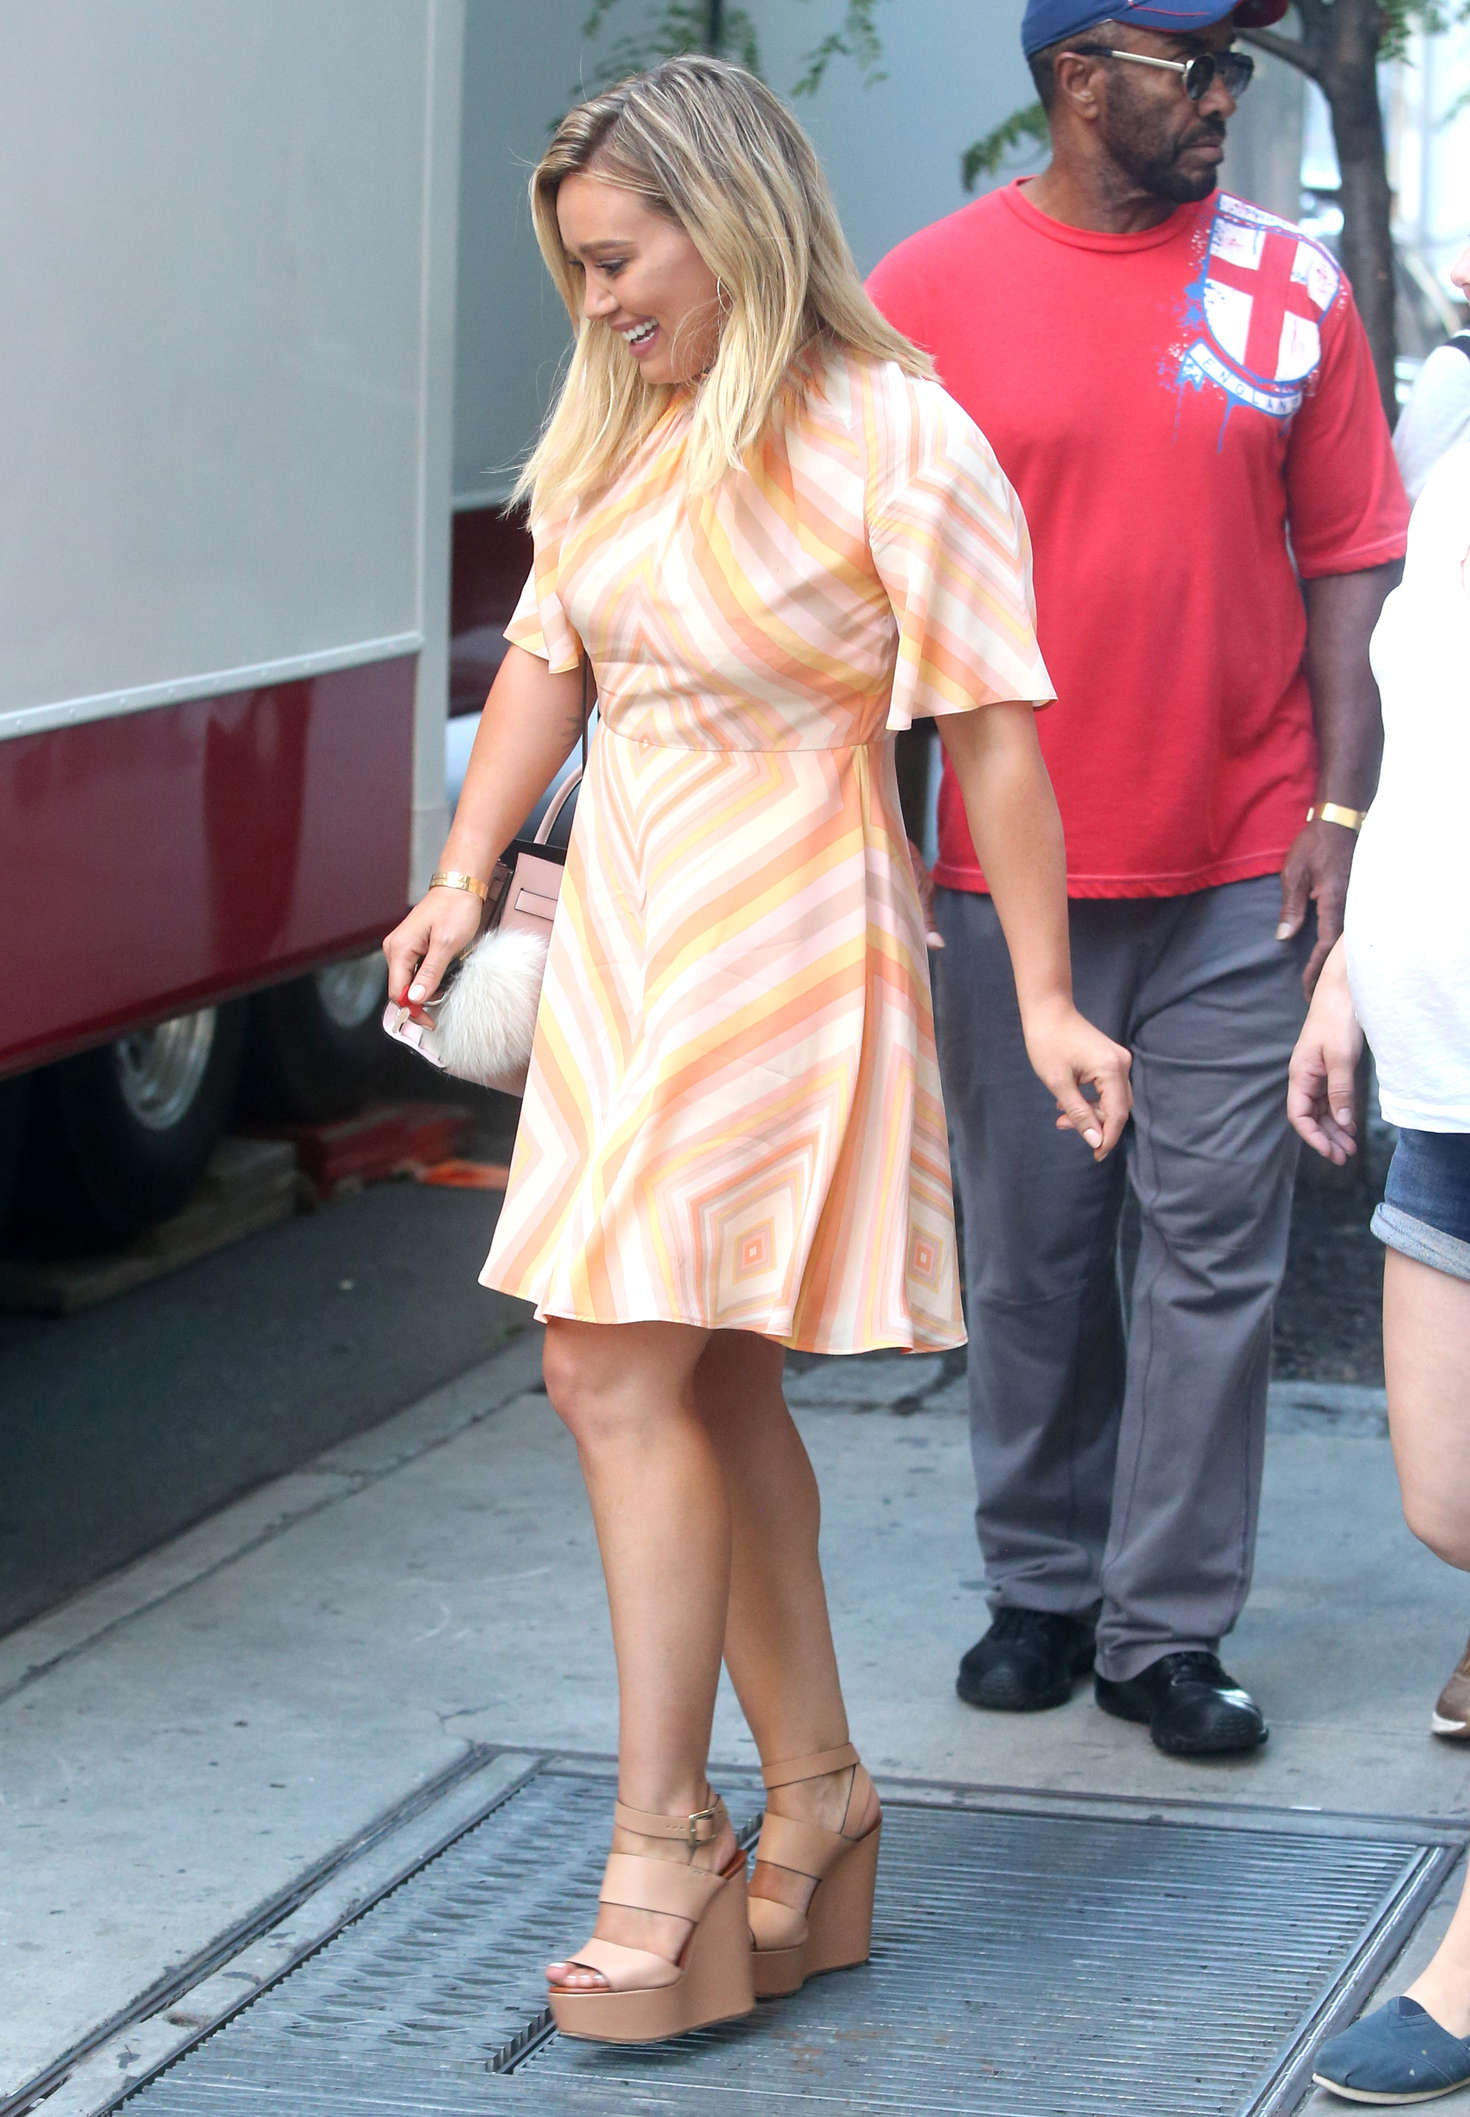 Hilary Duff 2016 : Hilary Duff in Mini Dress on the set of Younger -08